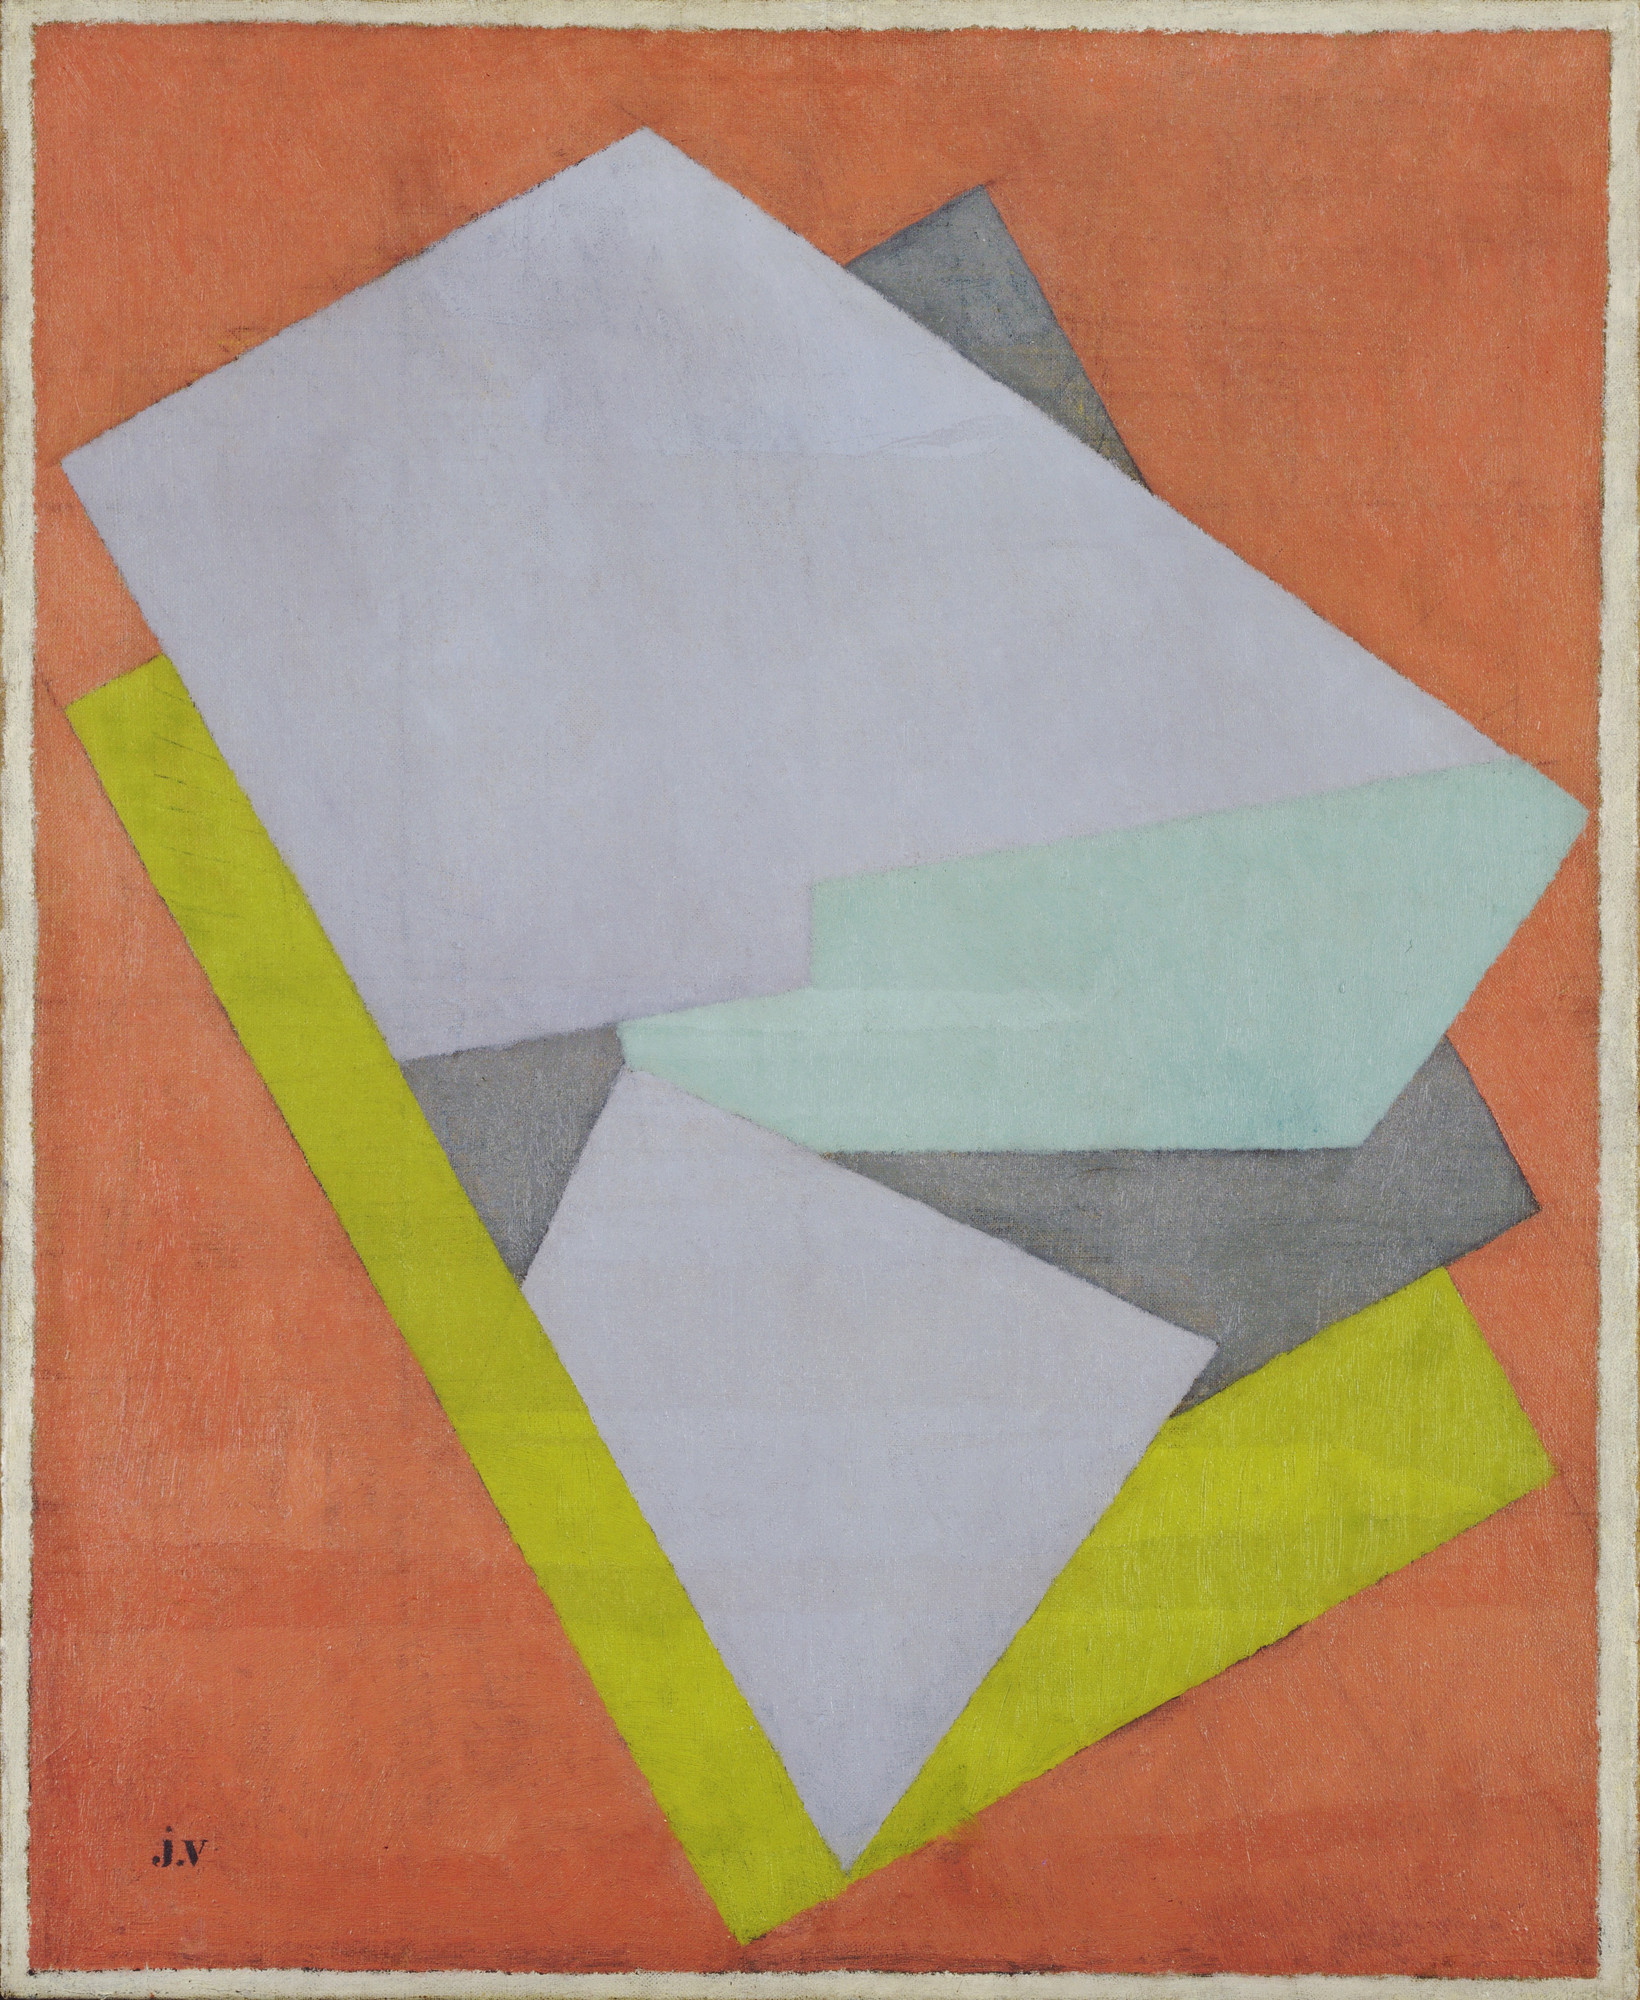 Jacques Villon. Color Perspective. 1922